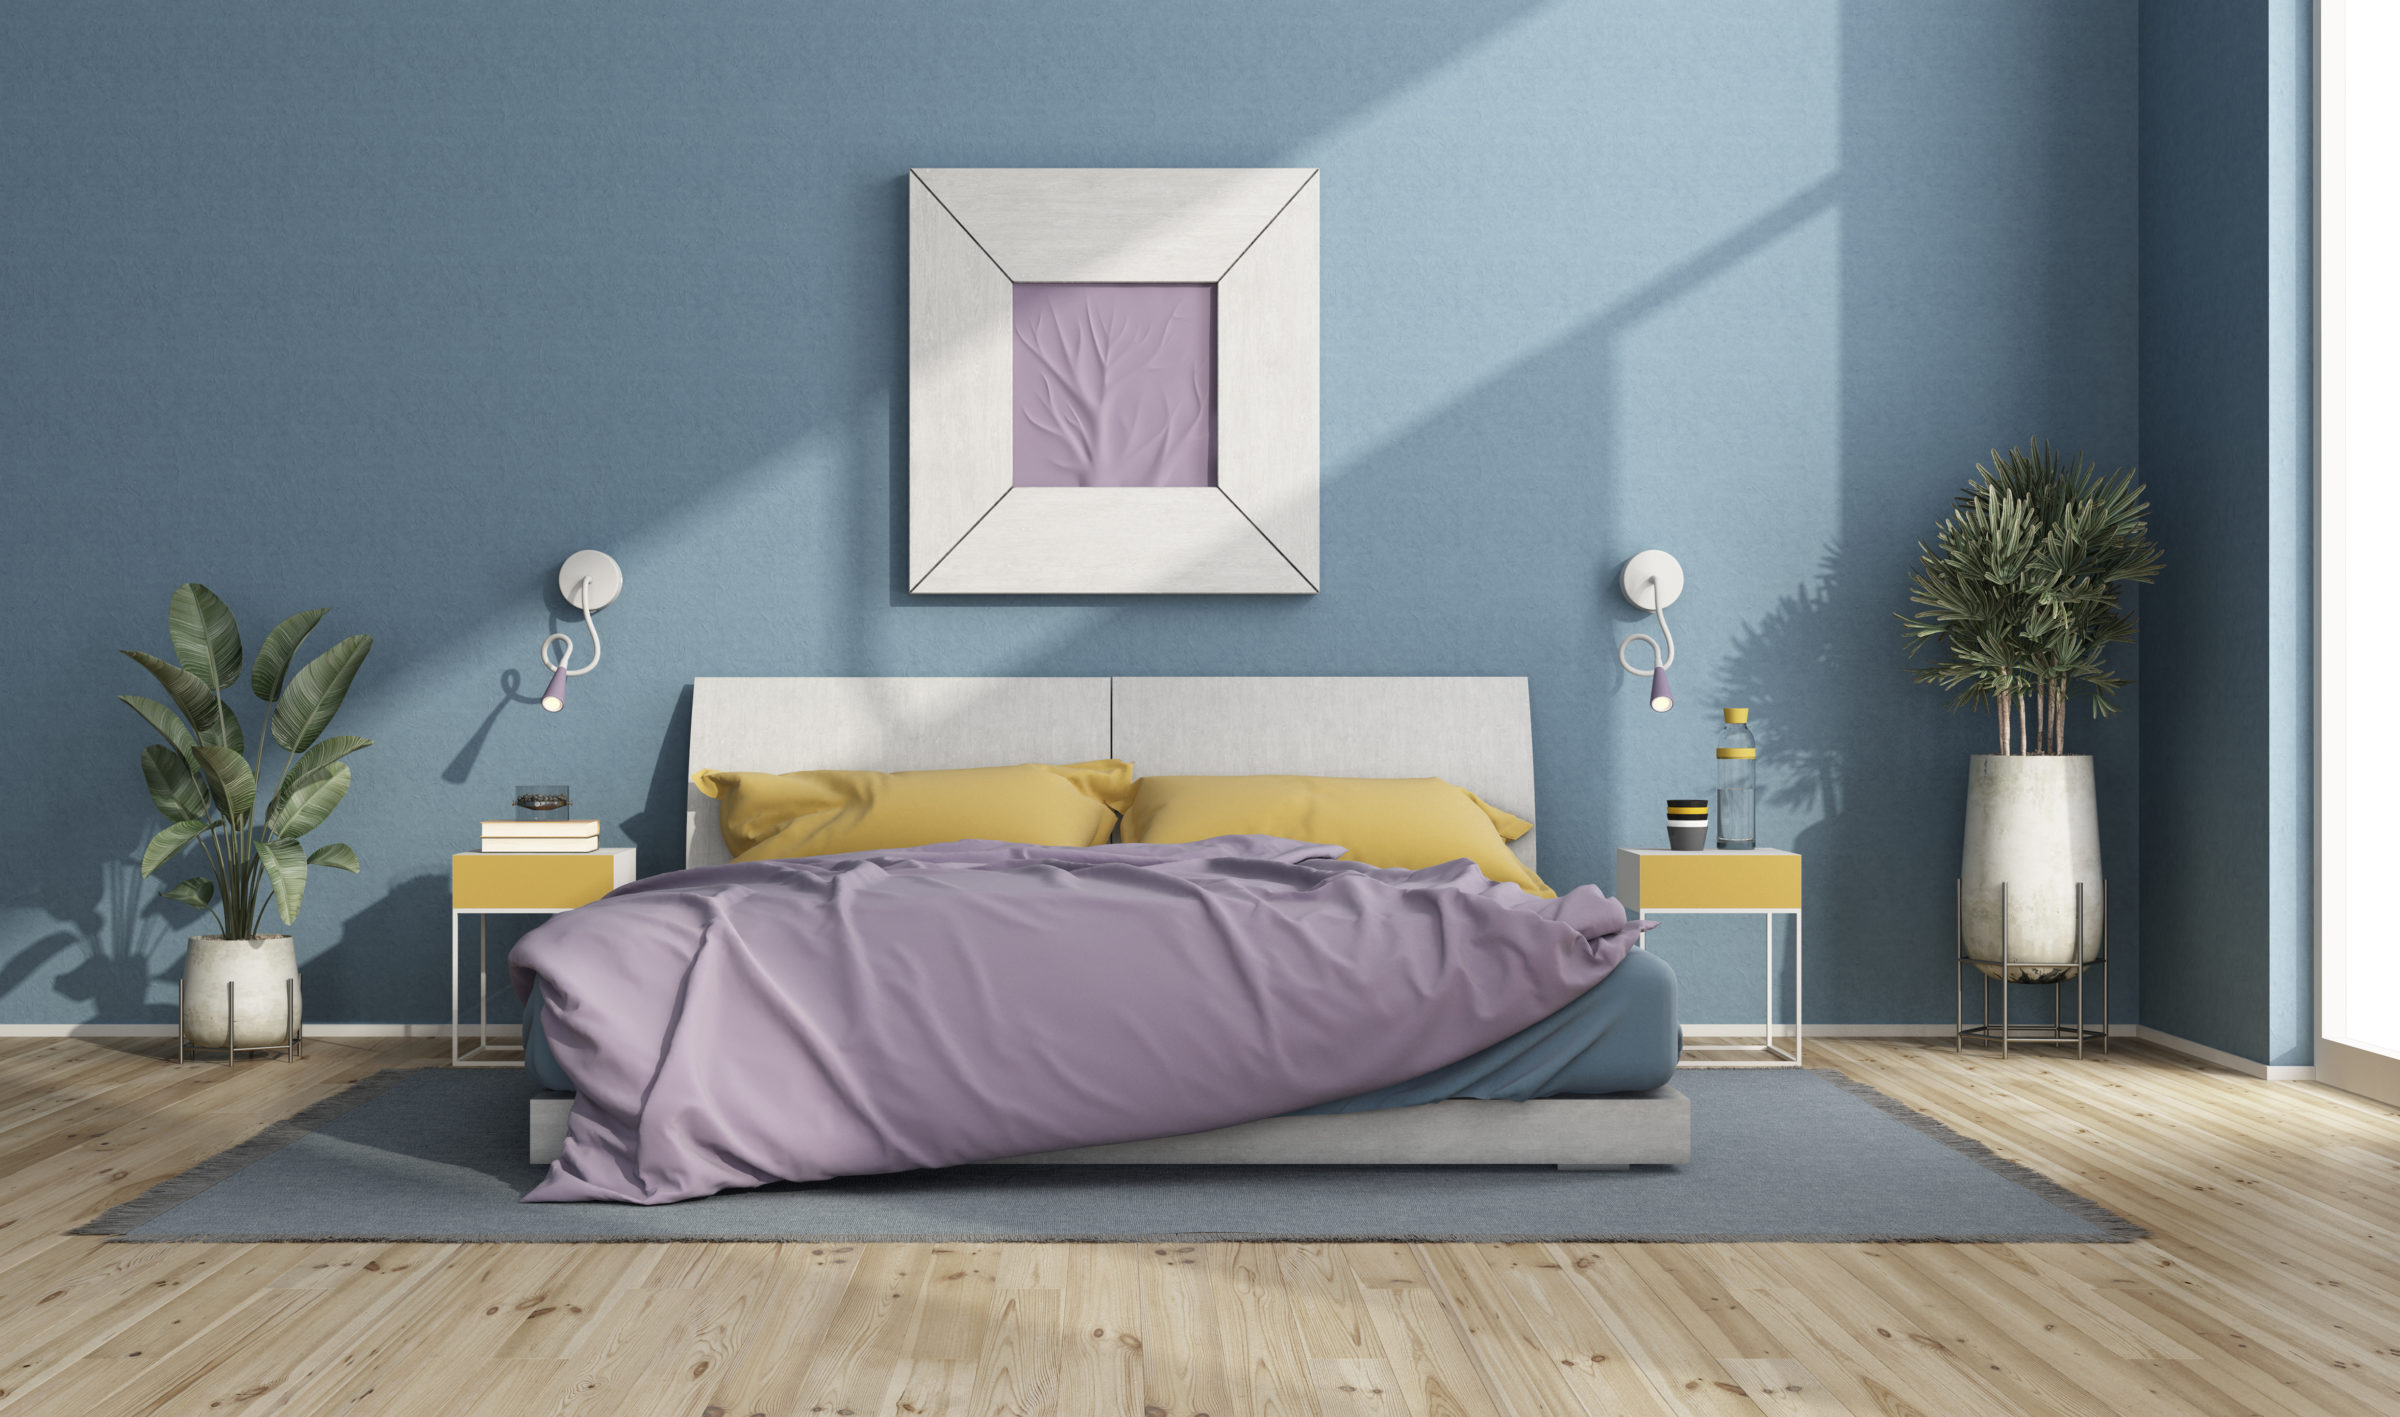 colorful double bed in a modern room with blue wal 2021 04 06 05 32 31 utc